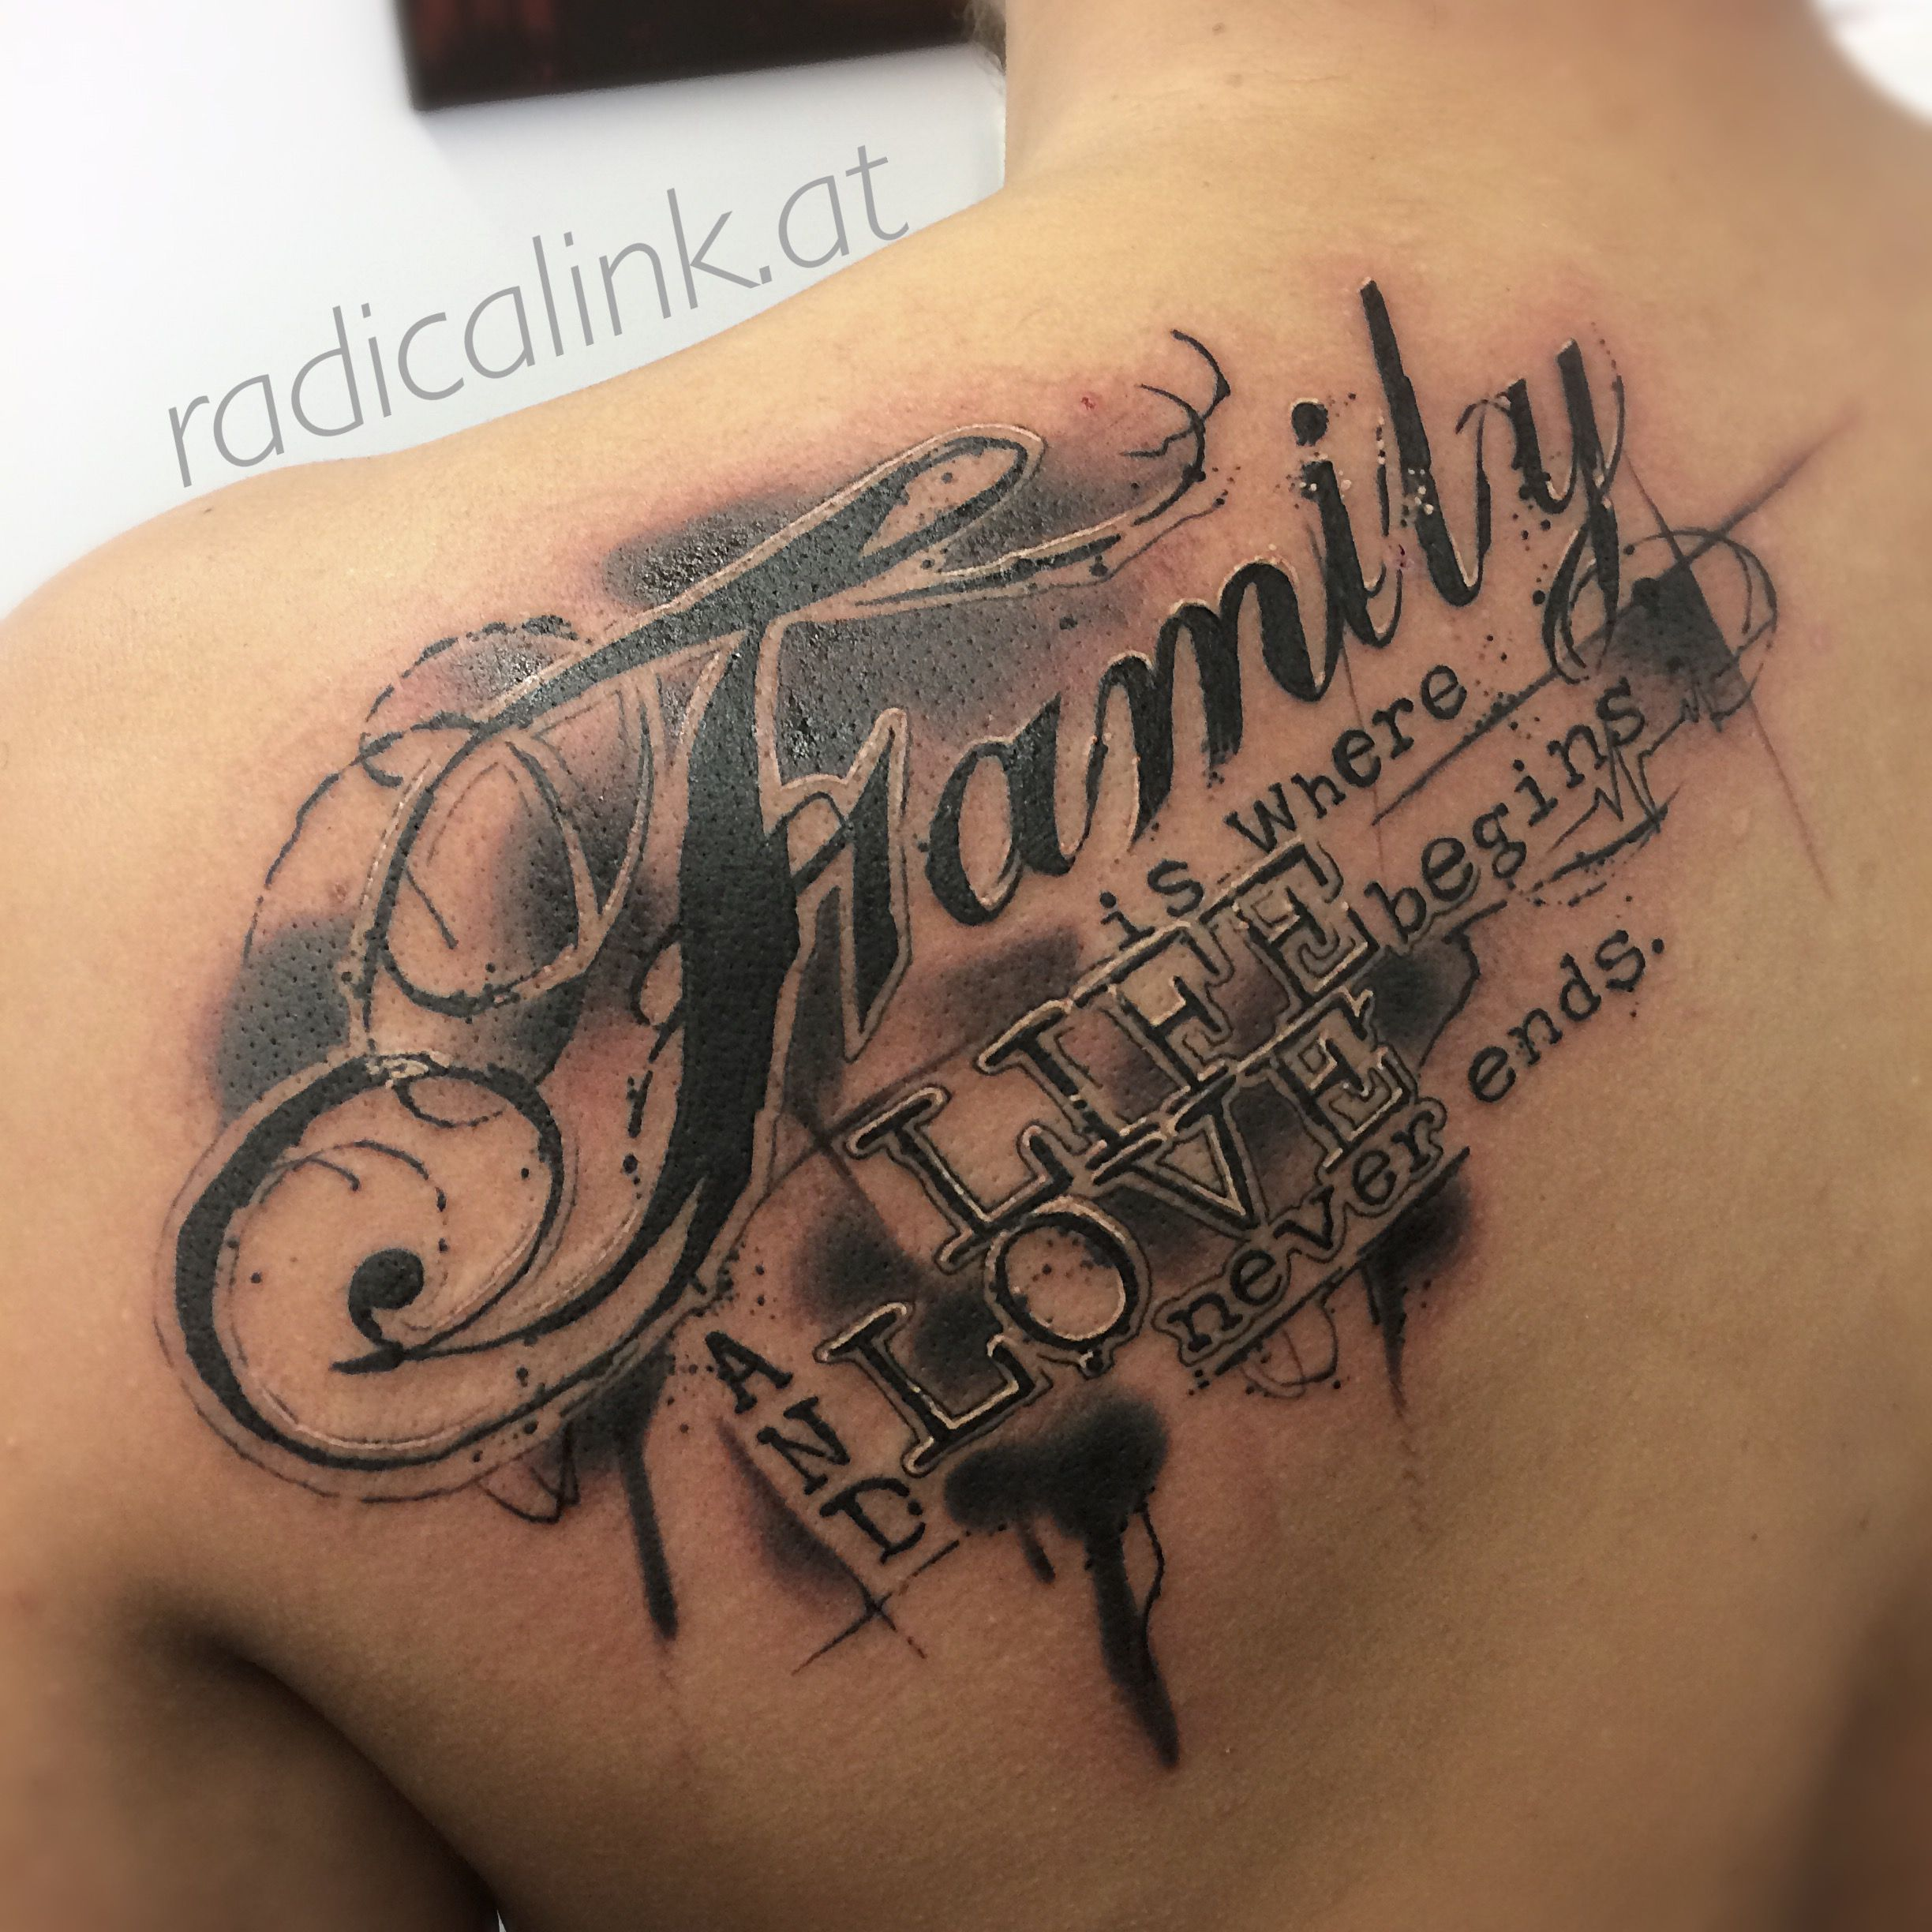 strokestylelettering Family tattoos, Tattoos, Writing